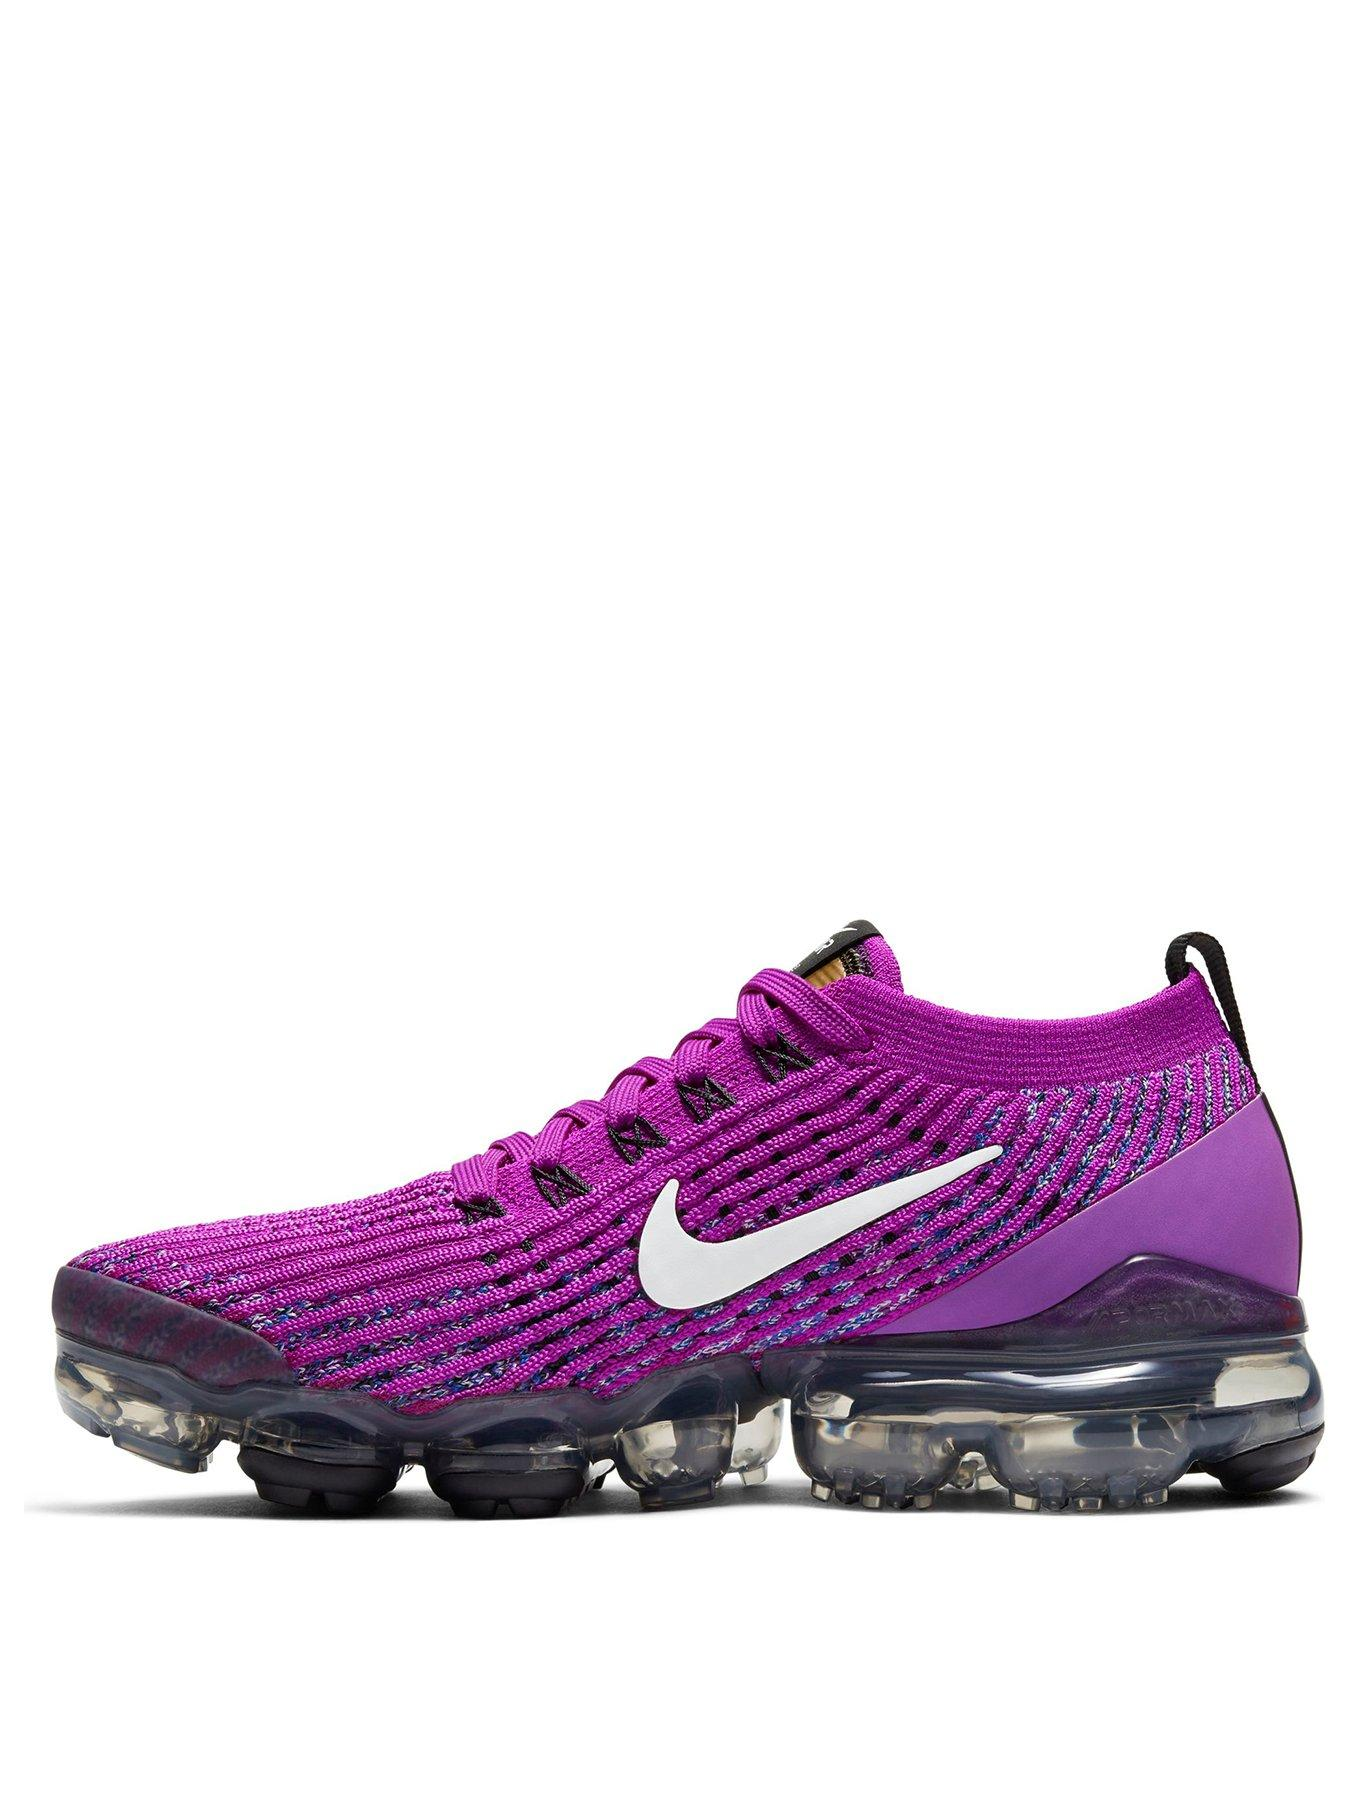 Womens trainers | Womens sports shoes